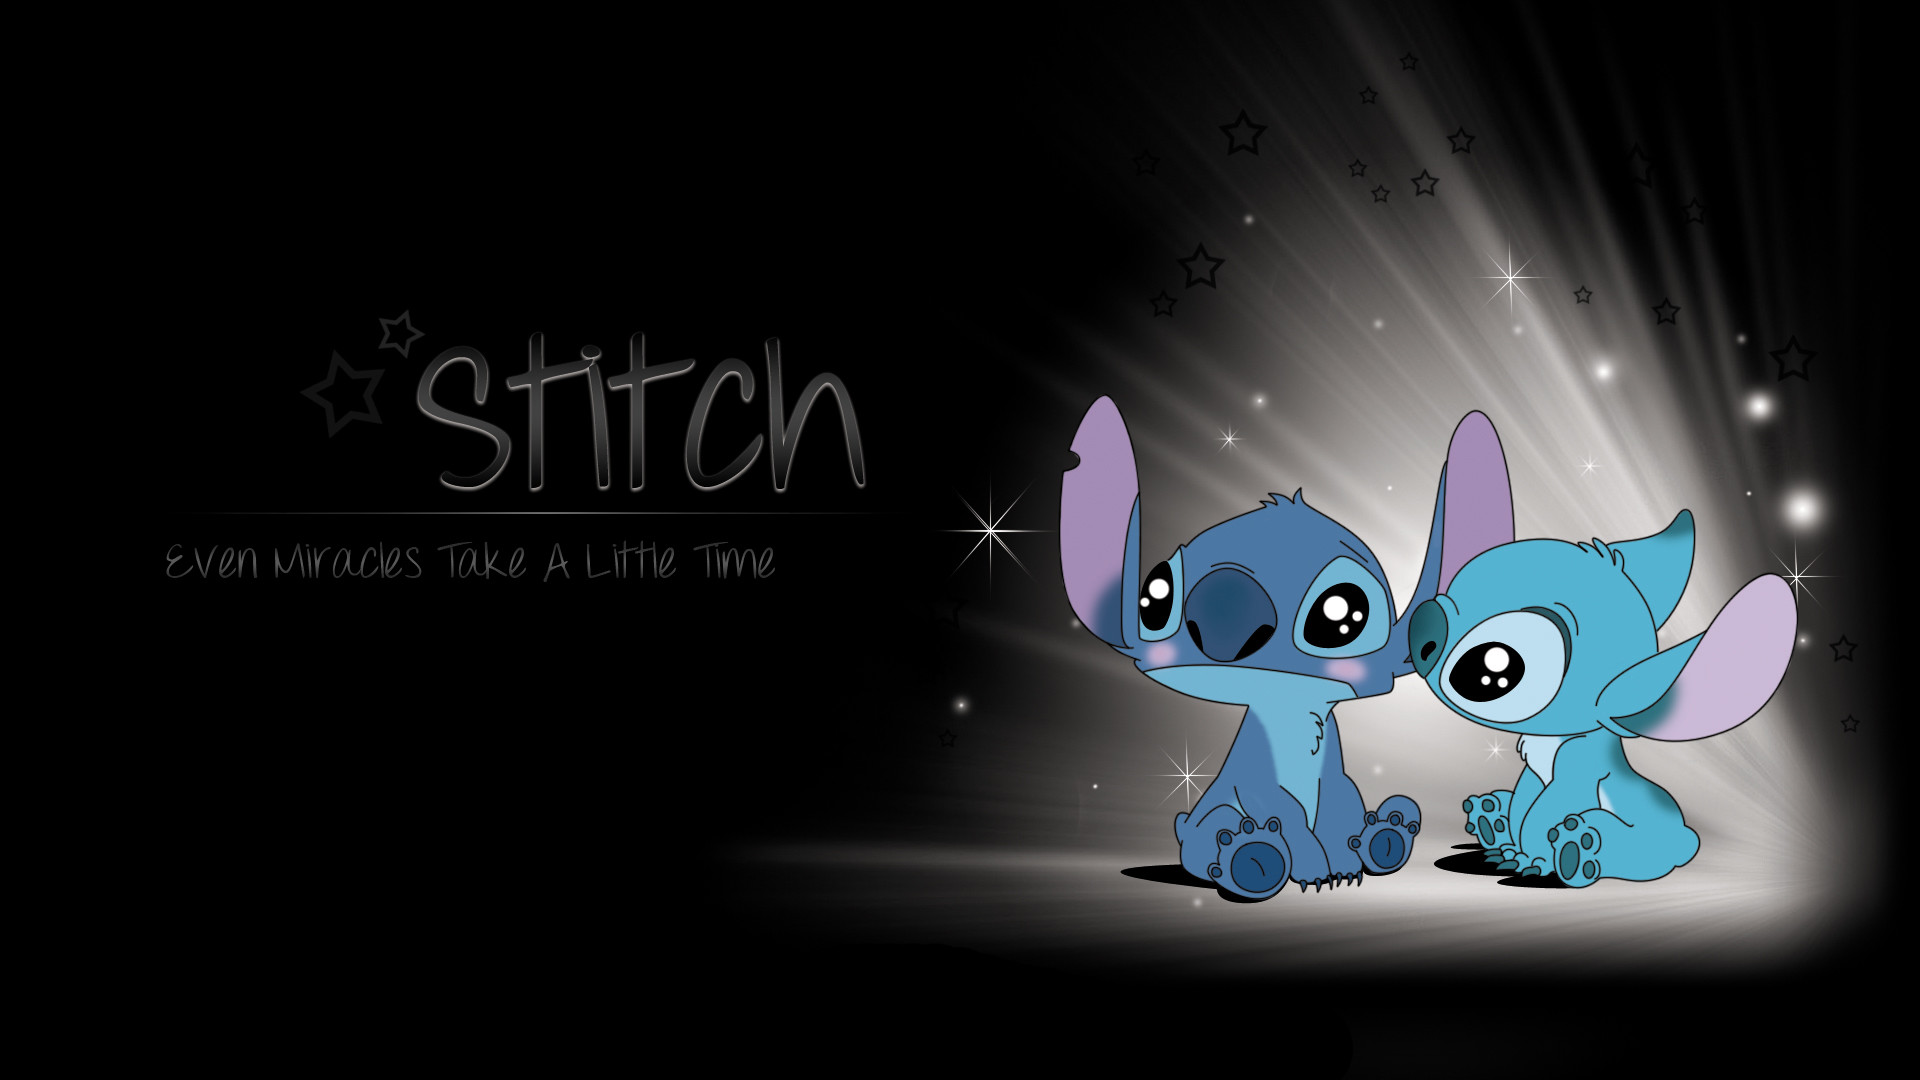 Stitch Iphone Wallpaper 69 Images